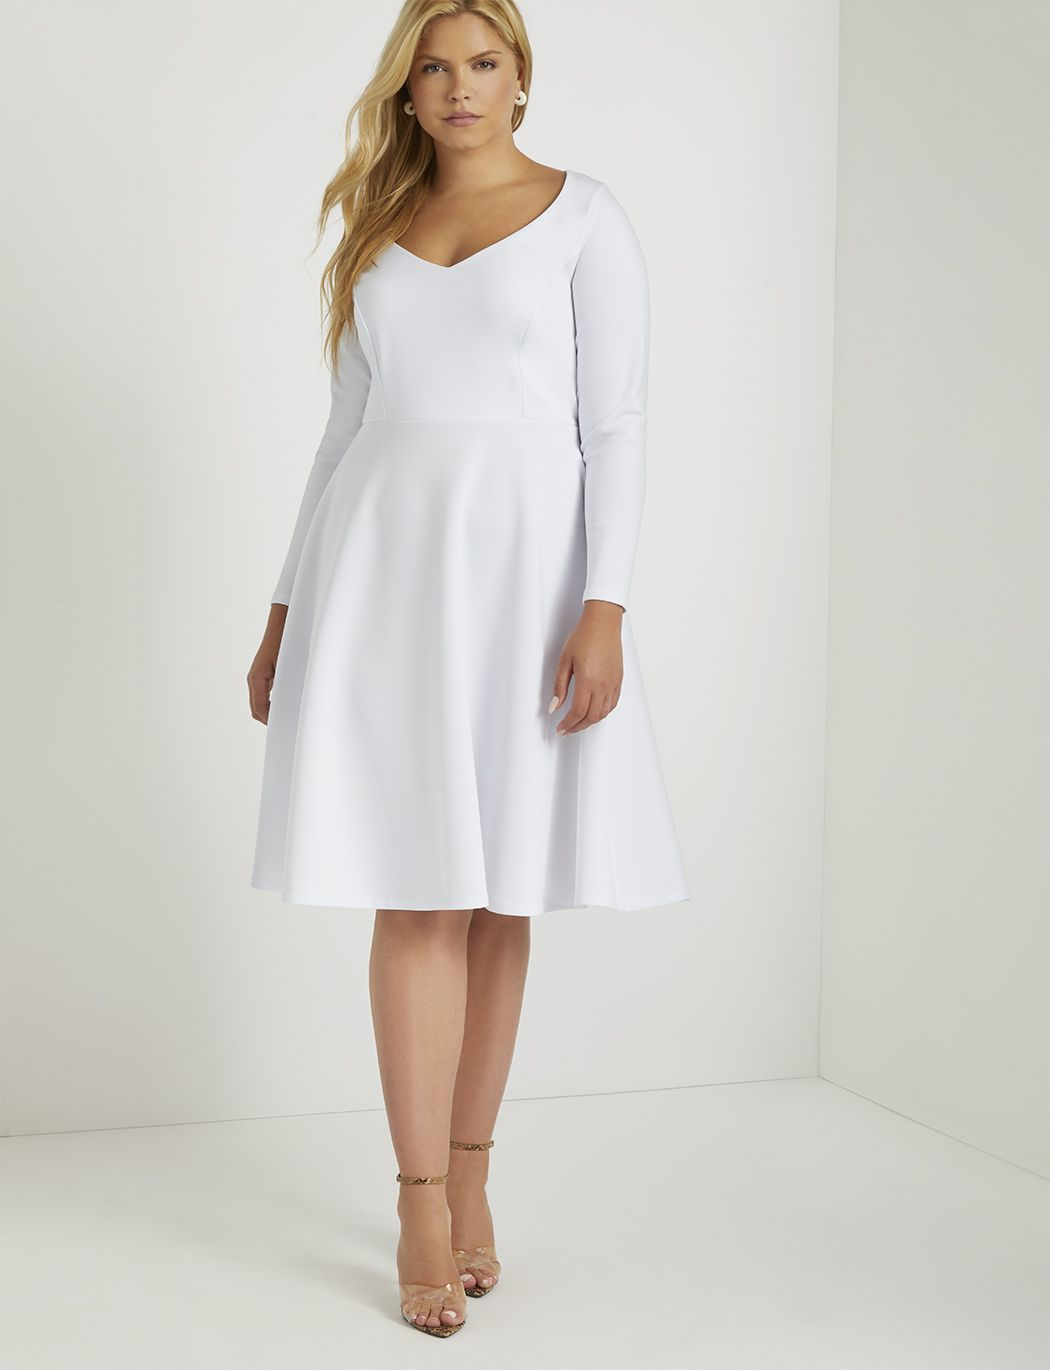 Sweetheart Fit And Flare Dress Women S Plus Size Dresses Eloquii Fit And Flare Dress Long Sleeve Cocktail Dress Plus Size Dresses [ 1370 x 1050 Pixel ]